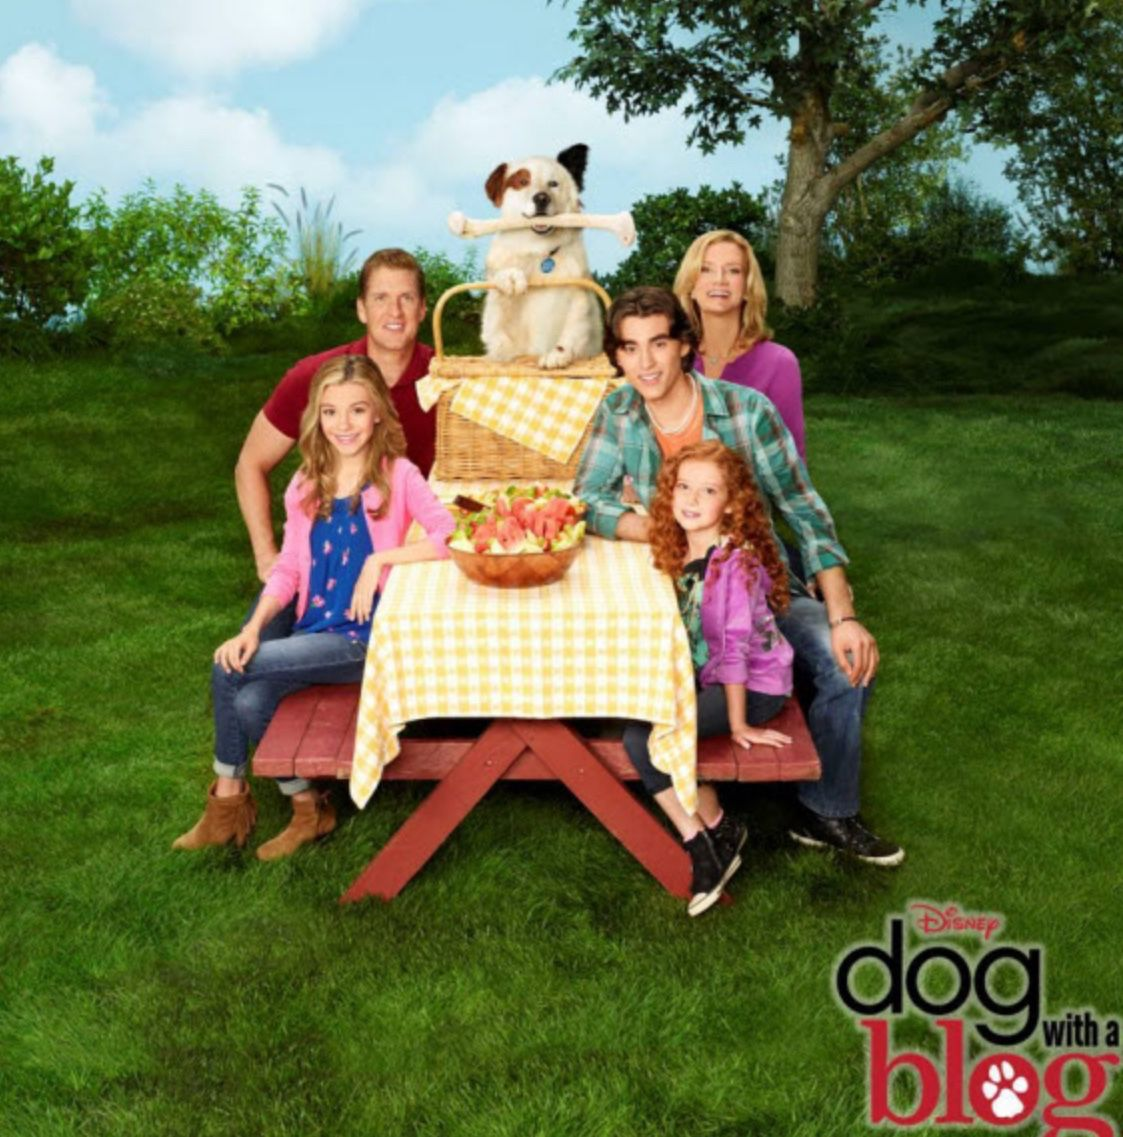 Family pic Dog with a blog, Disney channel shows, Disney